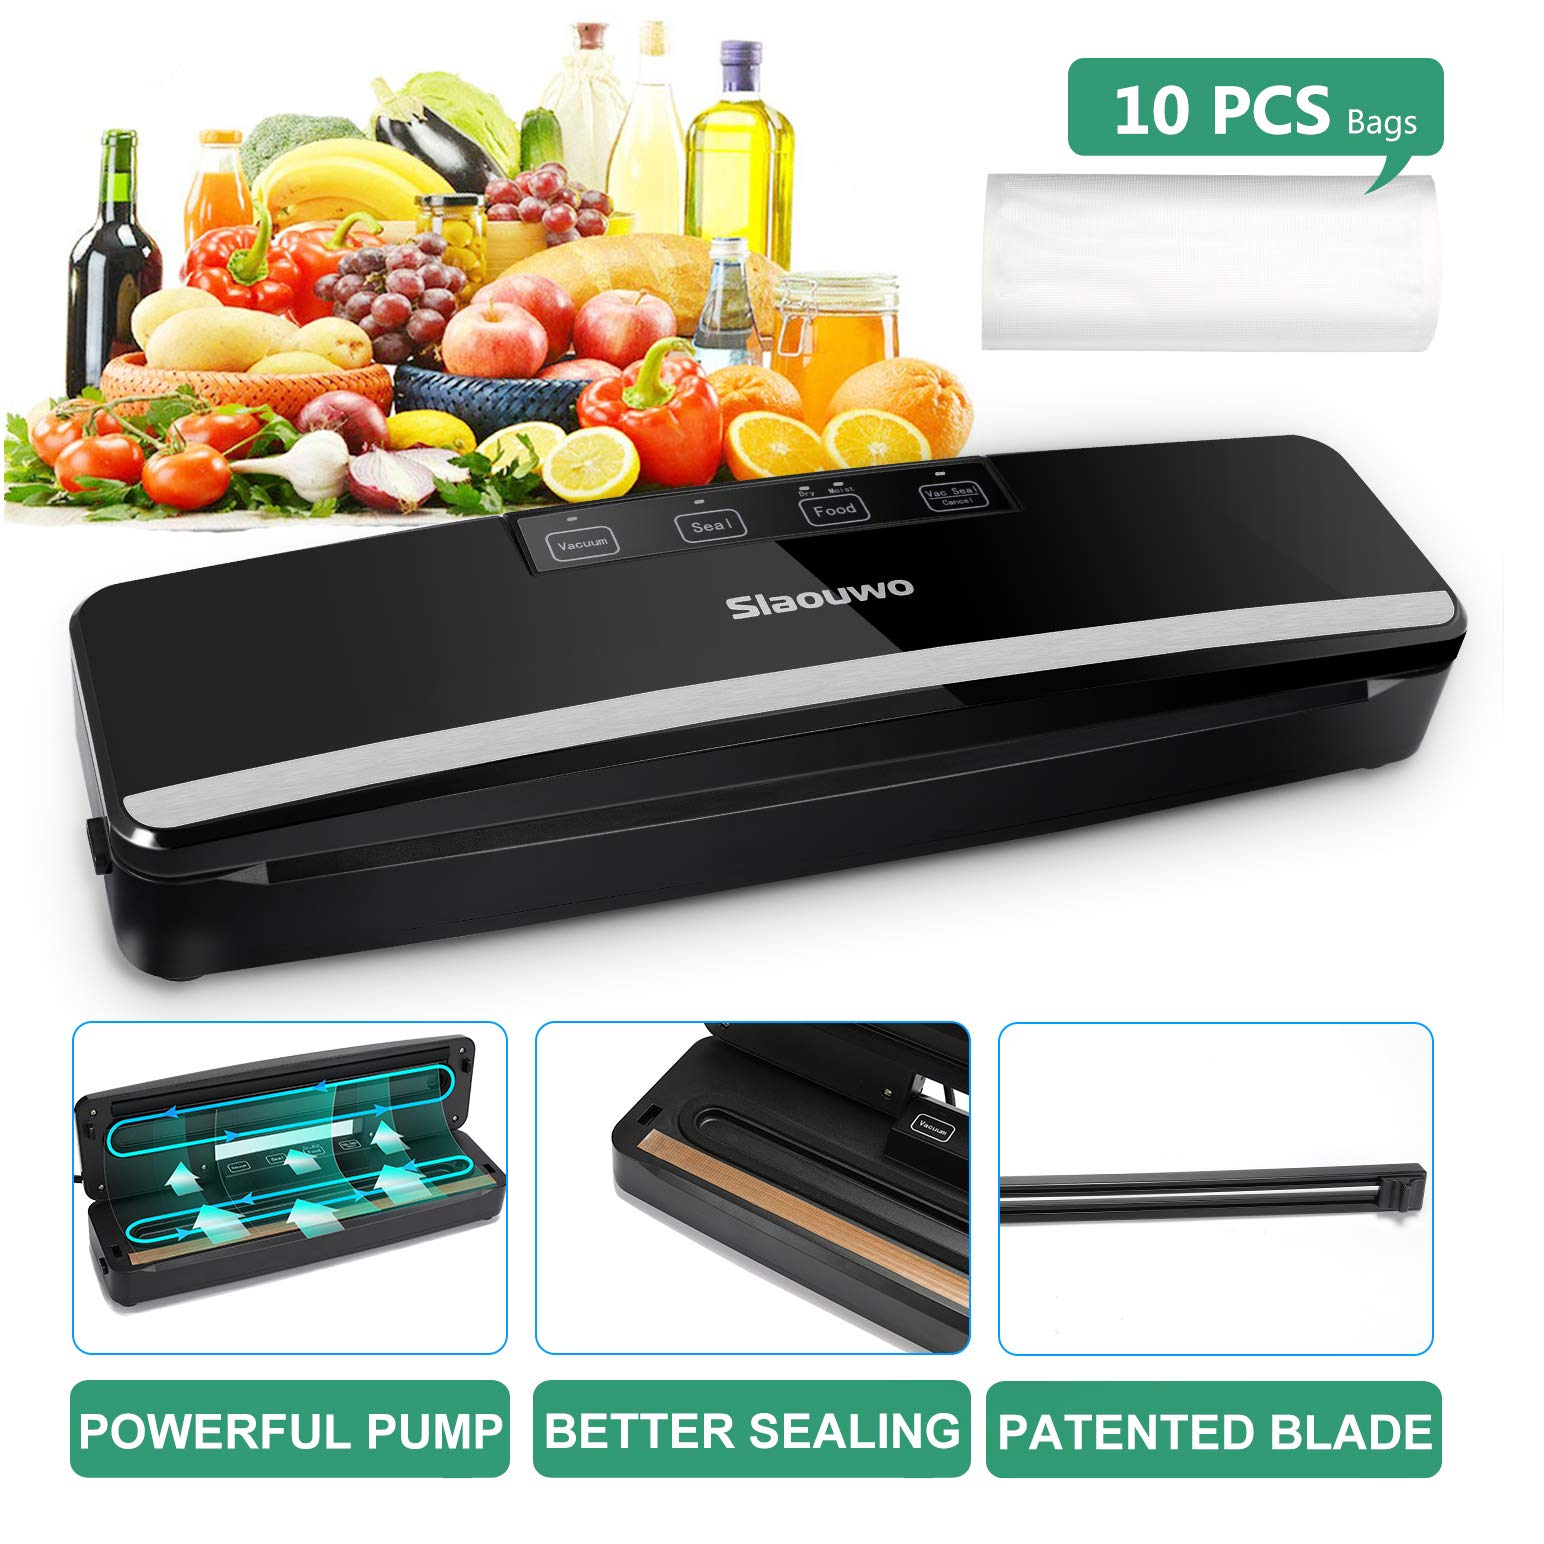 Slaouwo Vacuum Sealer Automatic Food Sealer Machine with Dry and Moist Modes, Led Indicator Light, Hose, Bags and Rolls Starter Kits Compact Design for Food Save by Slaouwo